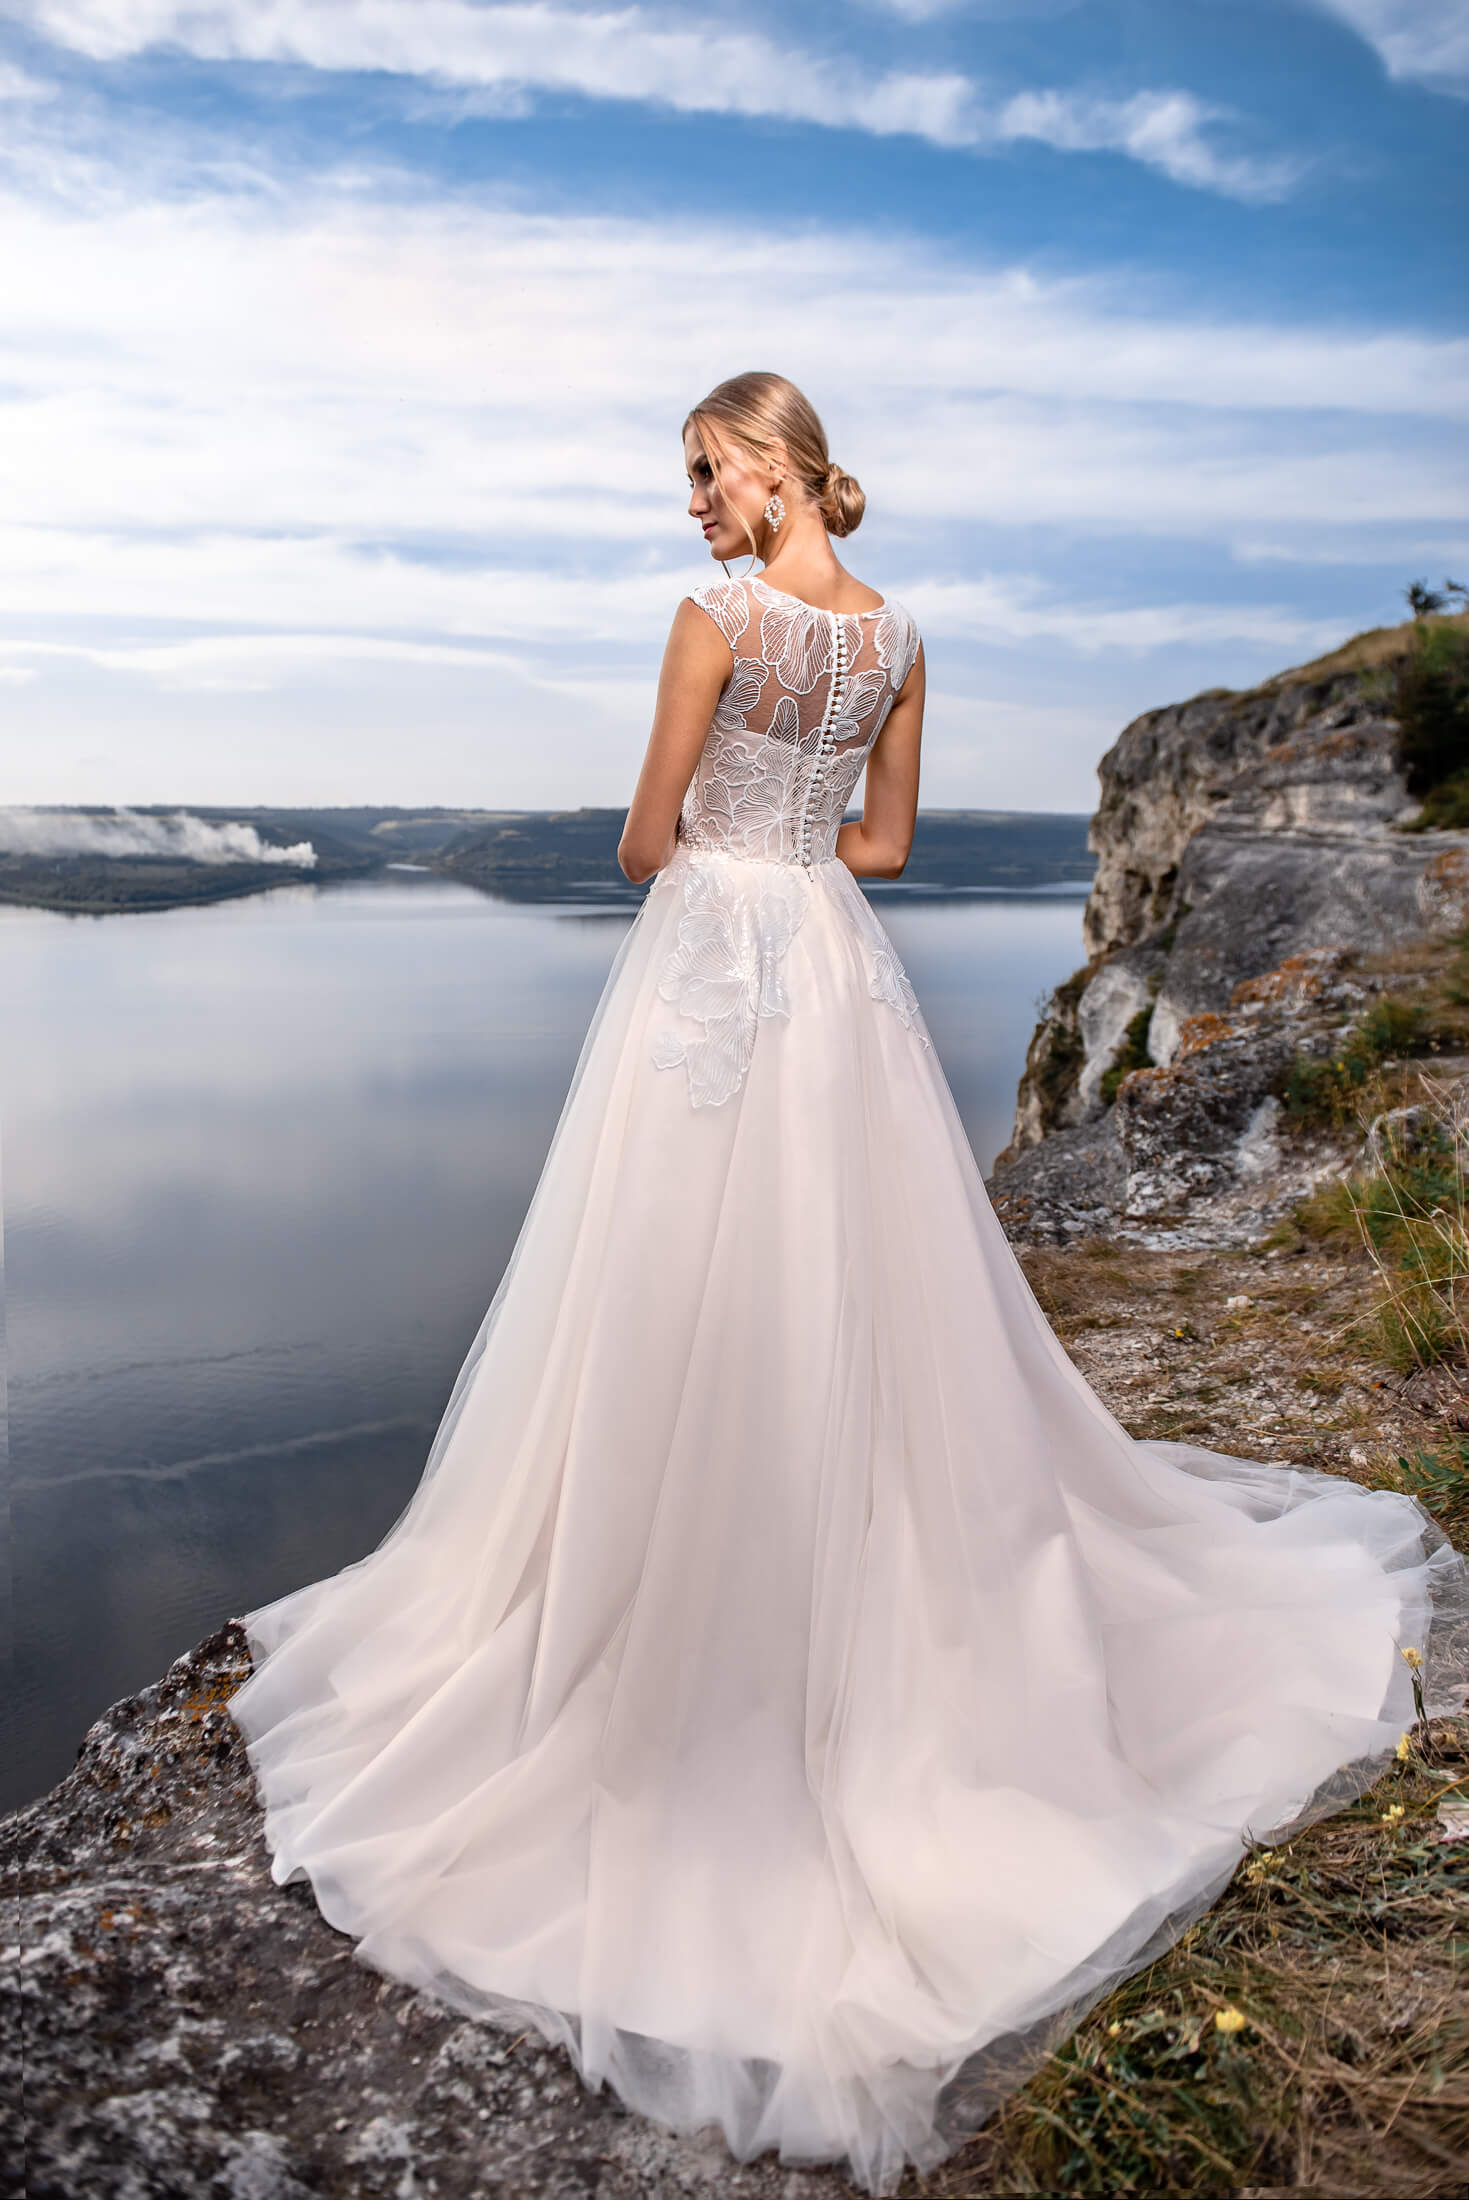 https://kayawedding.com/images/stories/virtuemart/product/SIG_2231 - 3 - 36.jpg